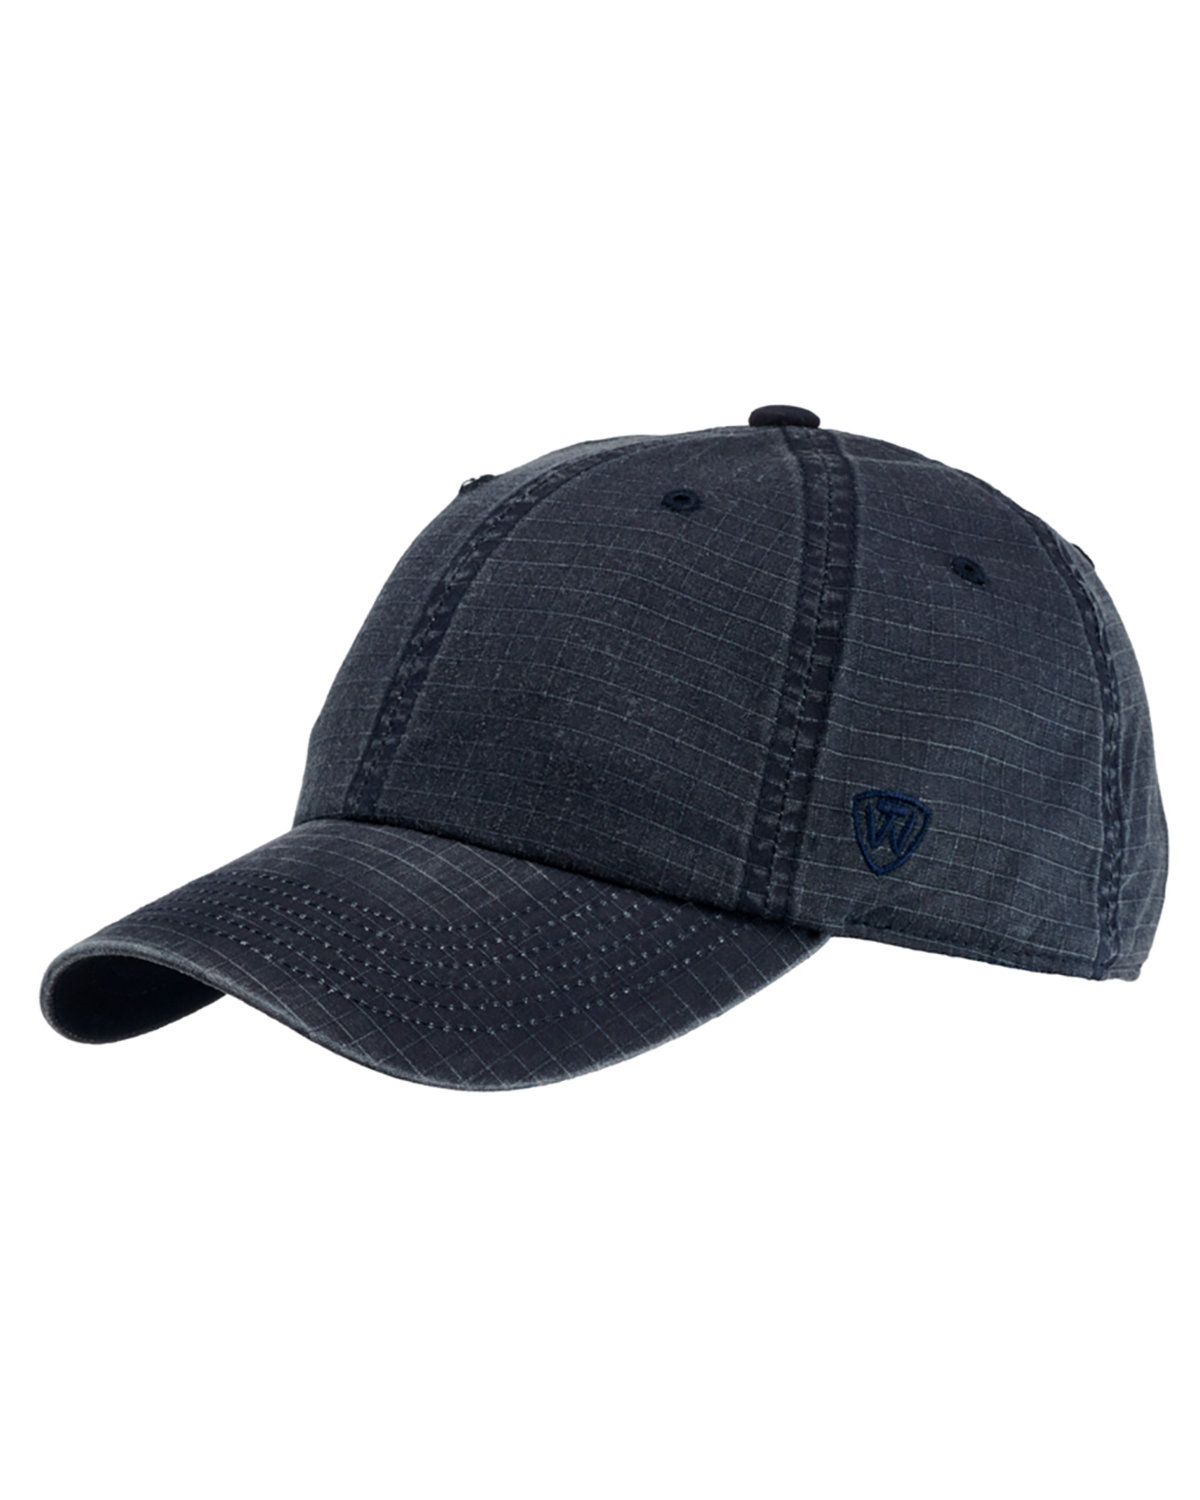 Top Of The World Ripper Washed Cotton Ripstop Hat NAVY